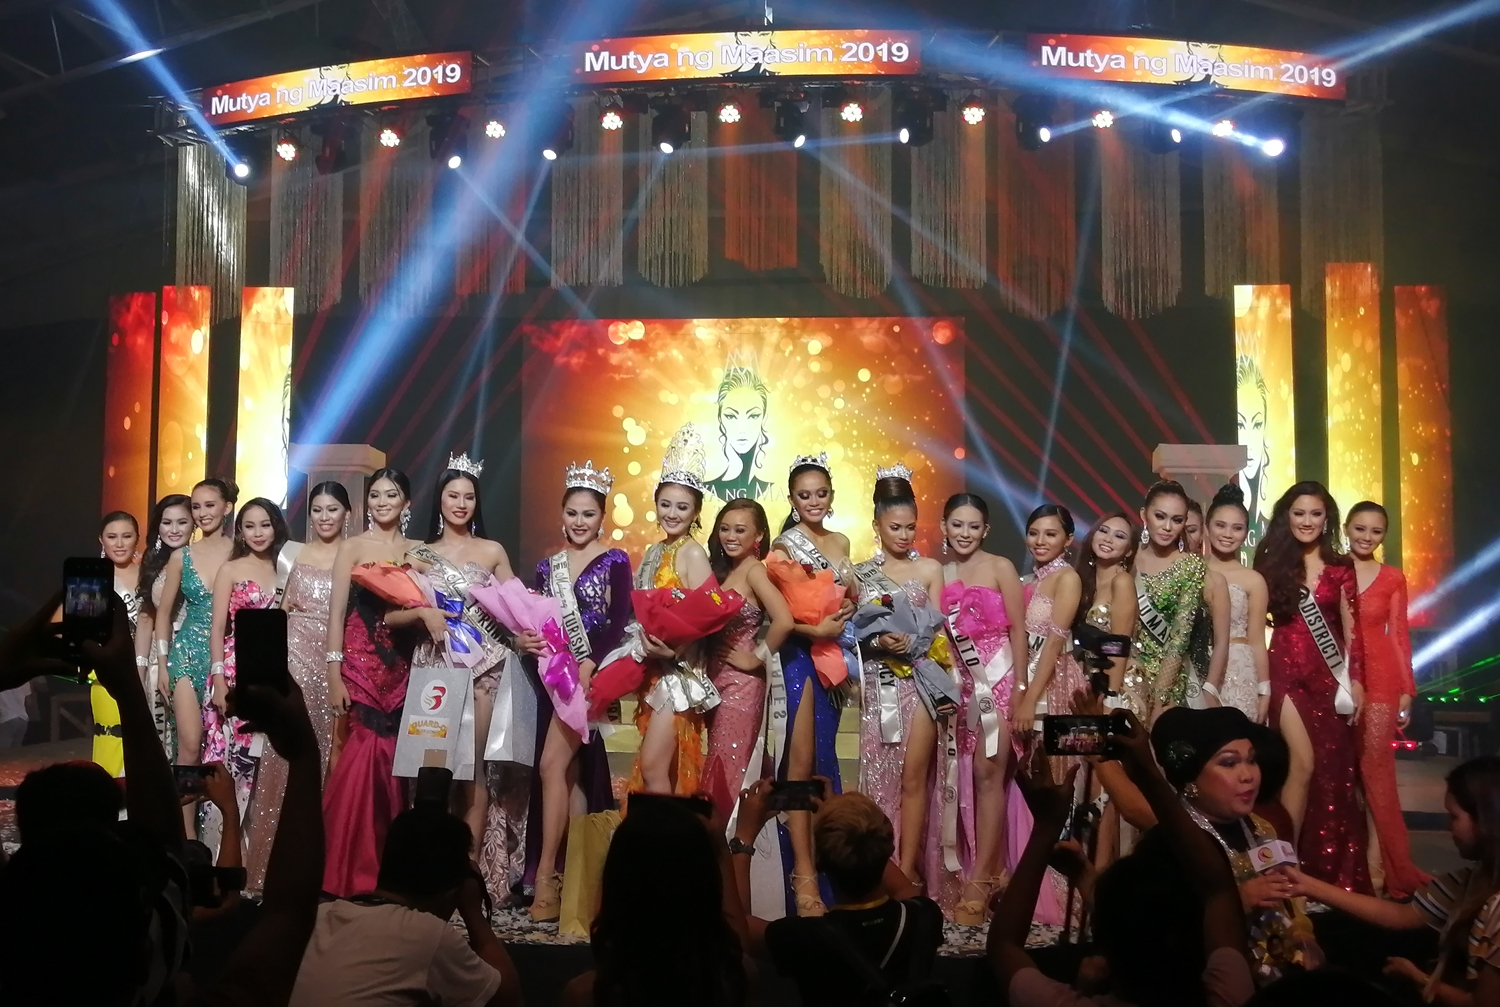 All beautiful. Mutya ng Maasim 2019 candidates